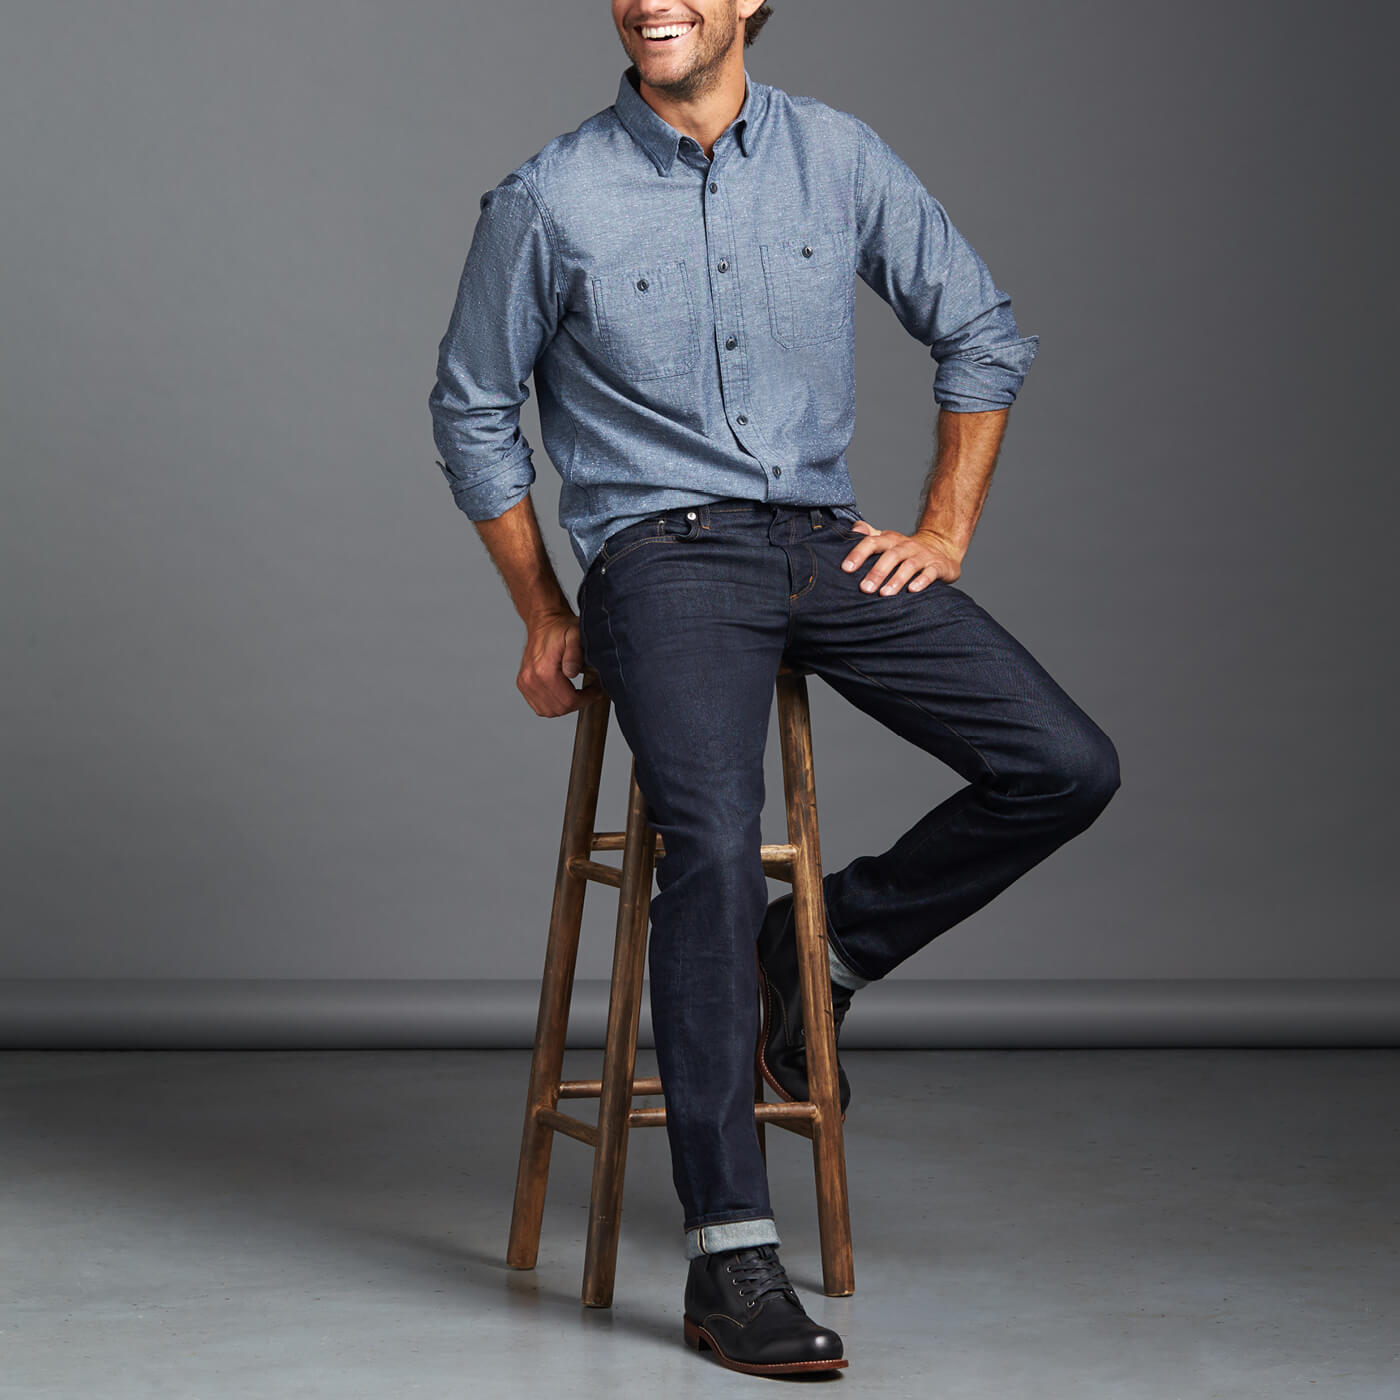 The Right Way to Pair Jeans with Shoes | Stitch Fix Men